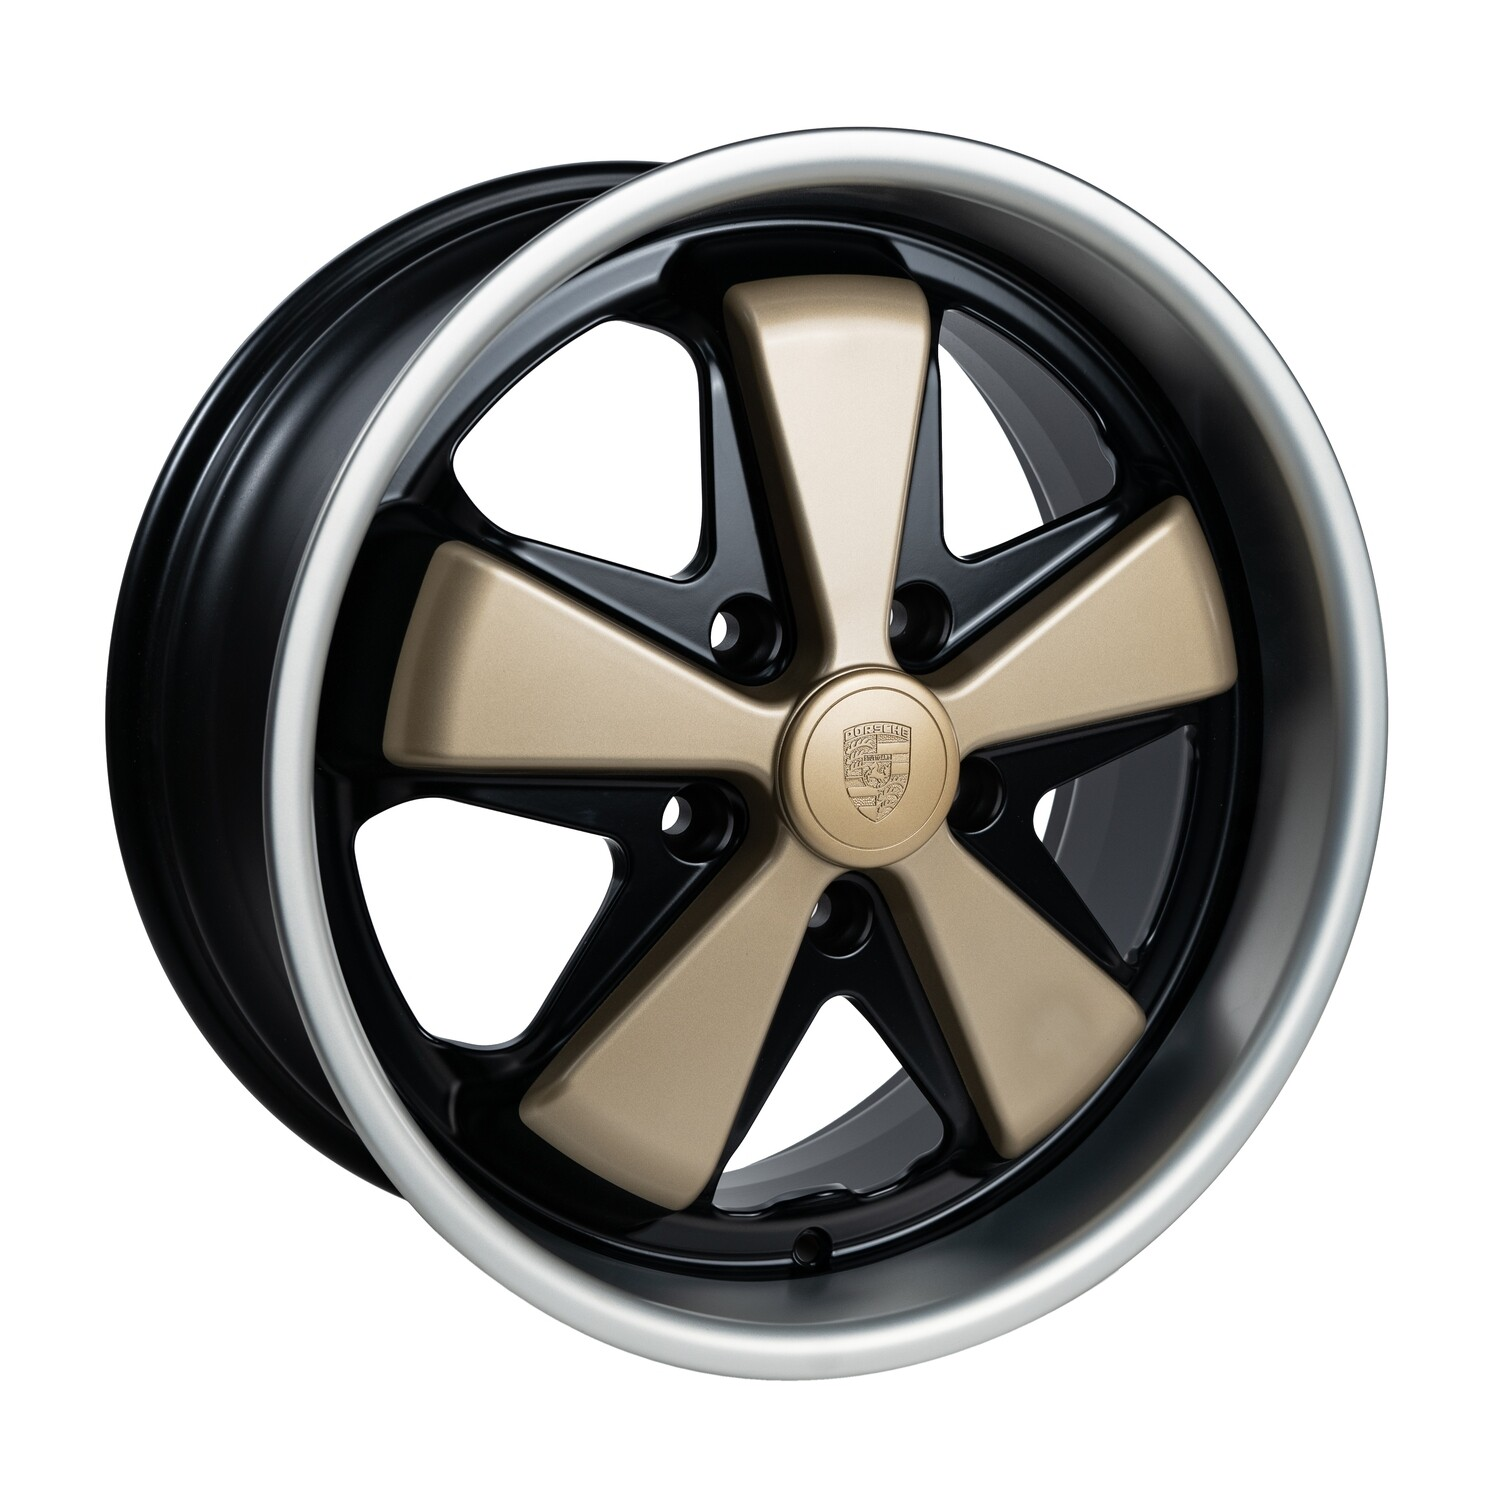 DP1885 Satin Petals Gold 18 x 8.5